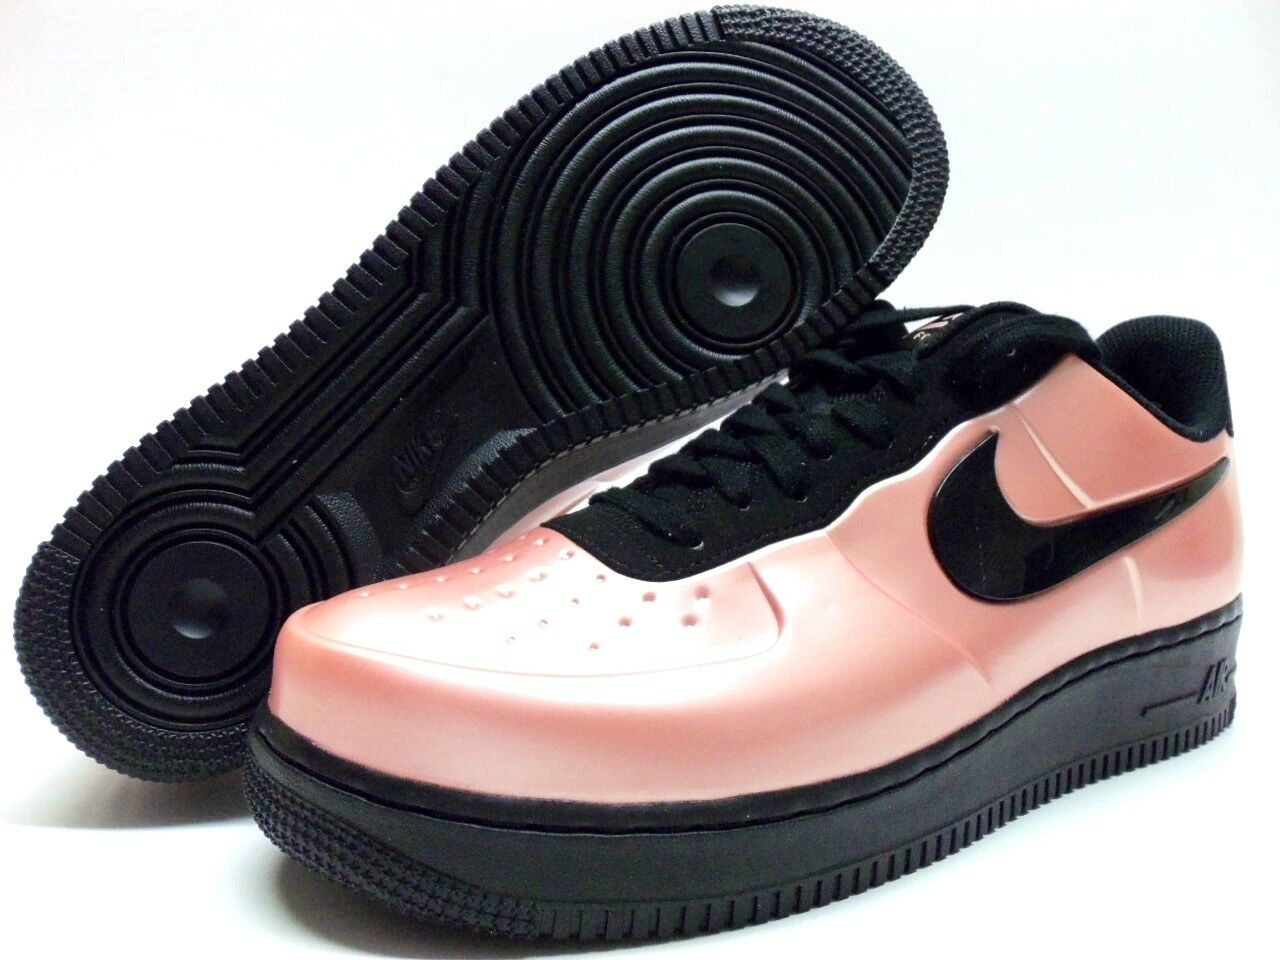 sneakers for cheap 10e7c 81c6a ... czech nike af1 foamposite pro cup 14 air force 1 coral stardust sz mens  14 cup